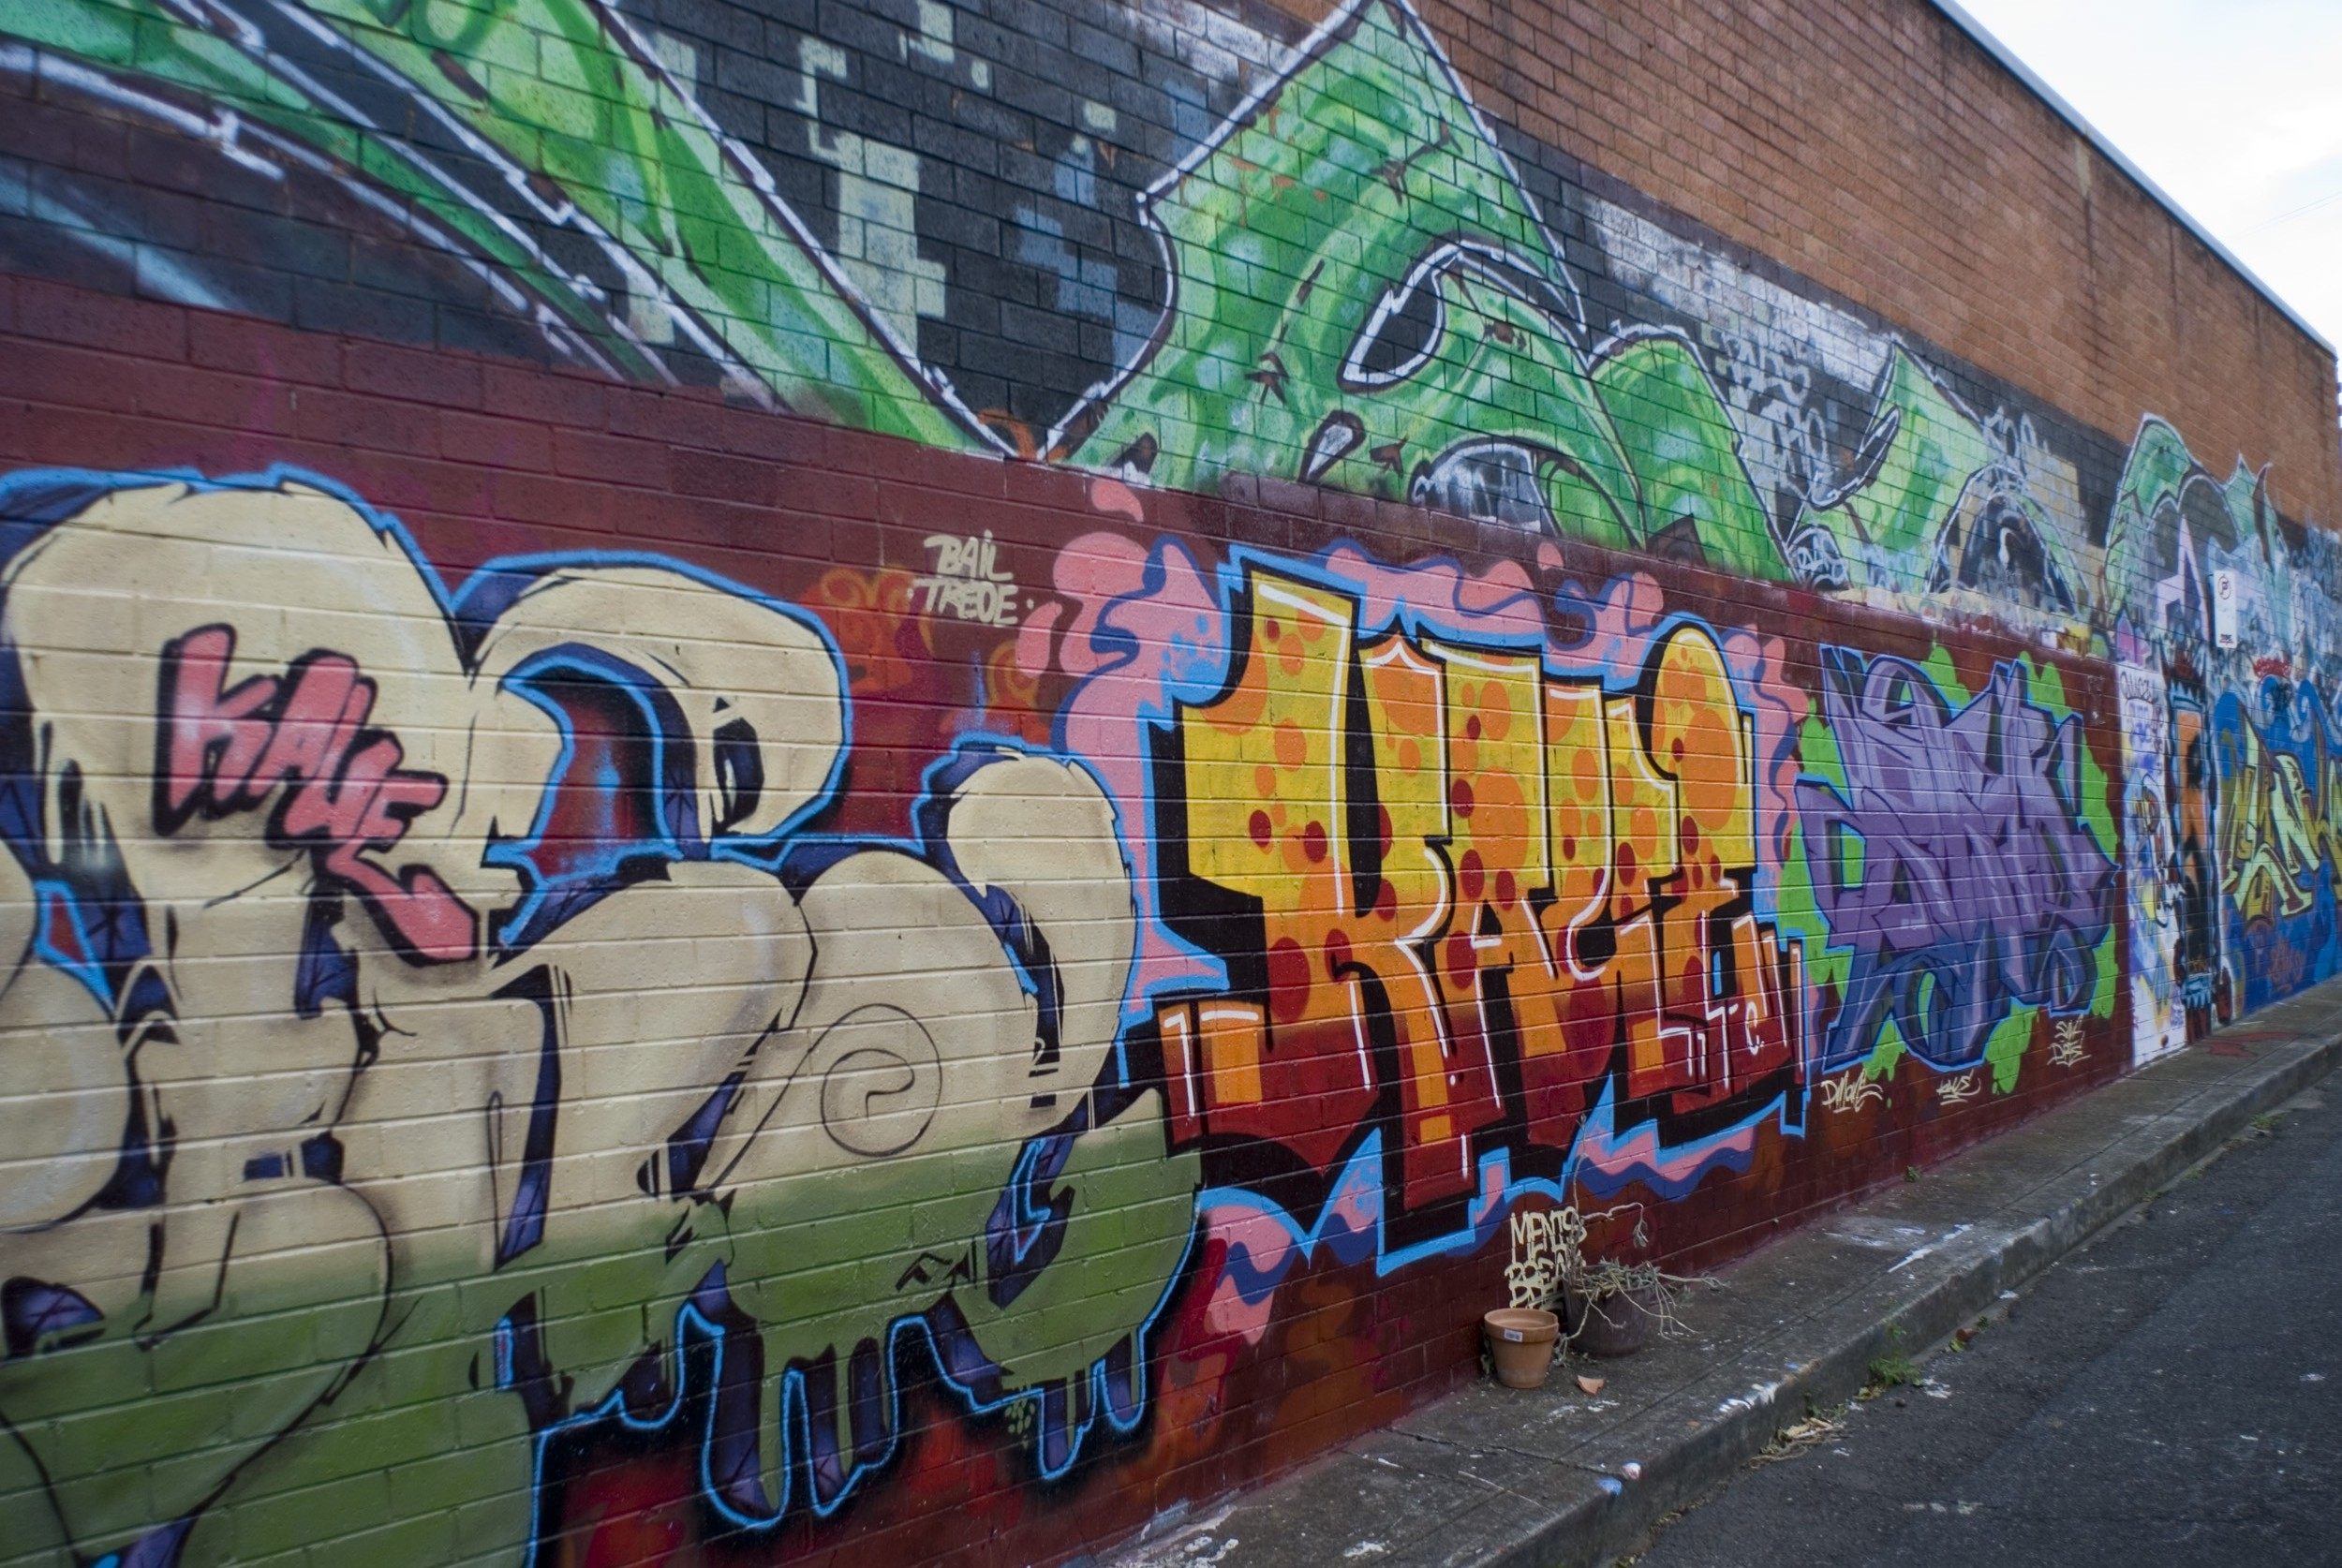 newtown street scene - the urban graffiti artwork gallery